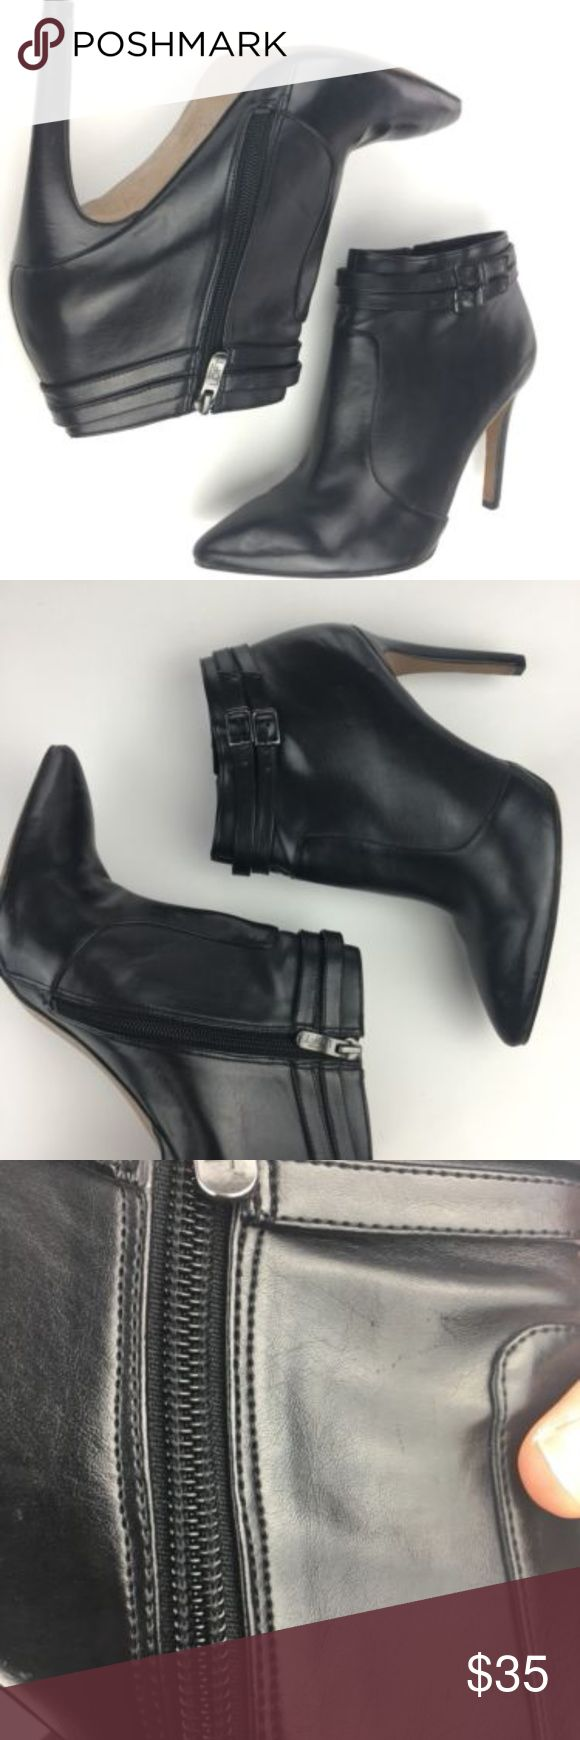 """LOFT black pointed toe high heel ankle booties womens Ann Taylor LOFT black pointed toe high heel ankle booties size 8 please see pictures for signs of wear - thank you! 4"""" heel height black zipper on the side buckle straps around the ankle for decoration manmade material LOFT Shoes Ankle Boots & Booties"""